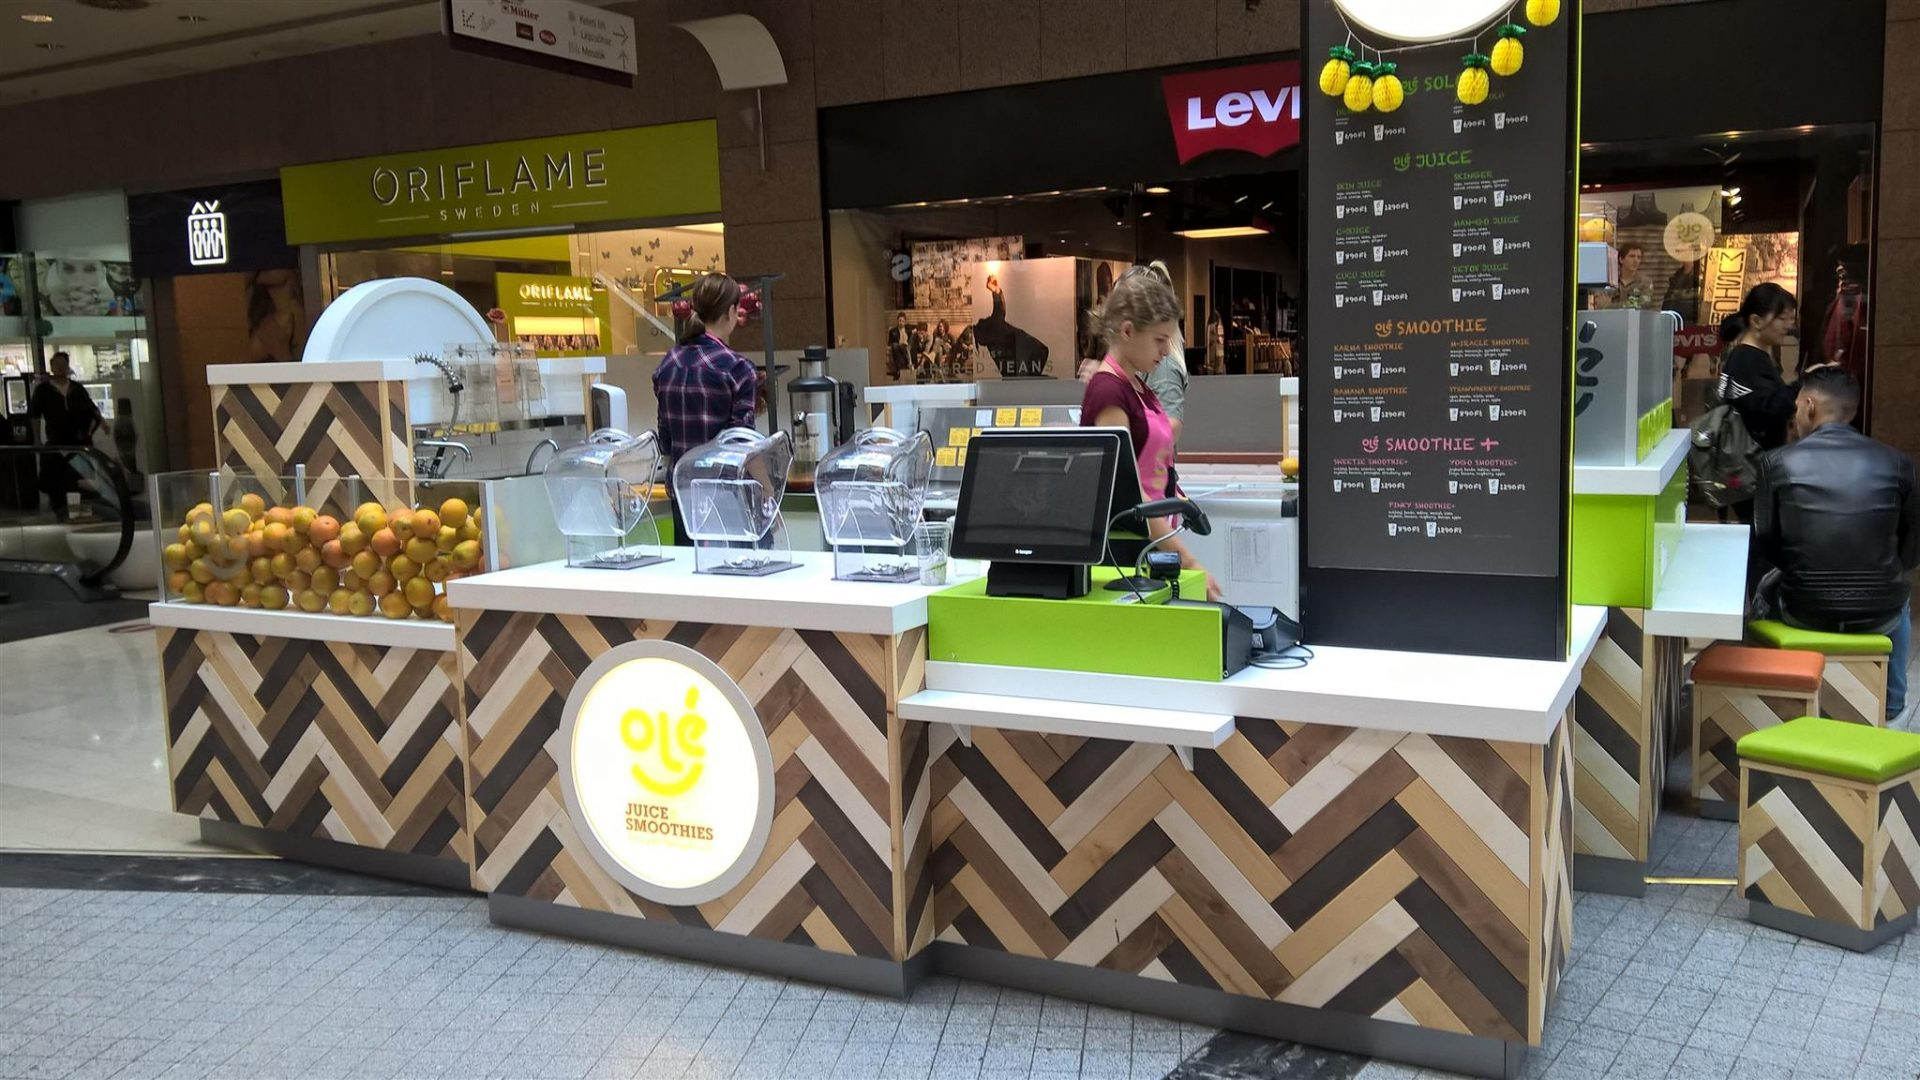 juice & smoothies kiosk